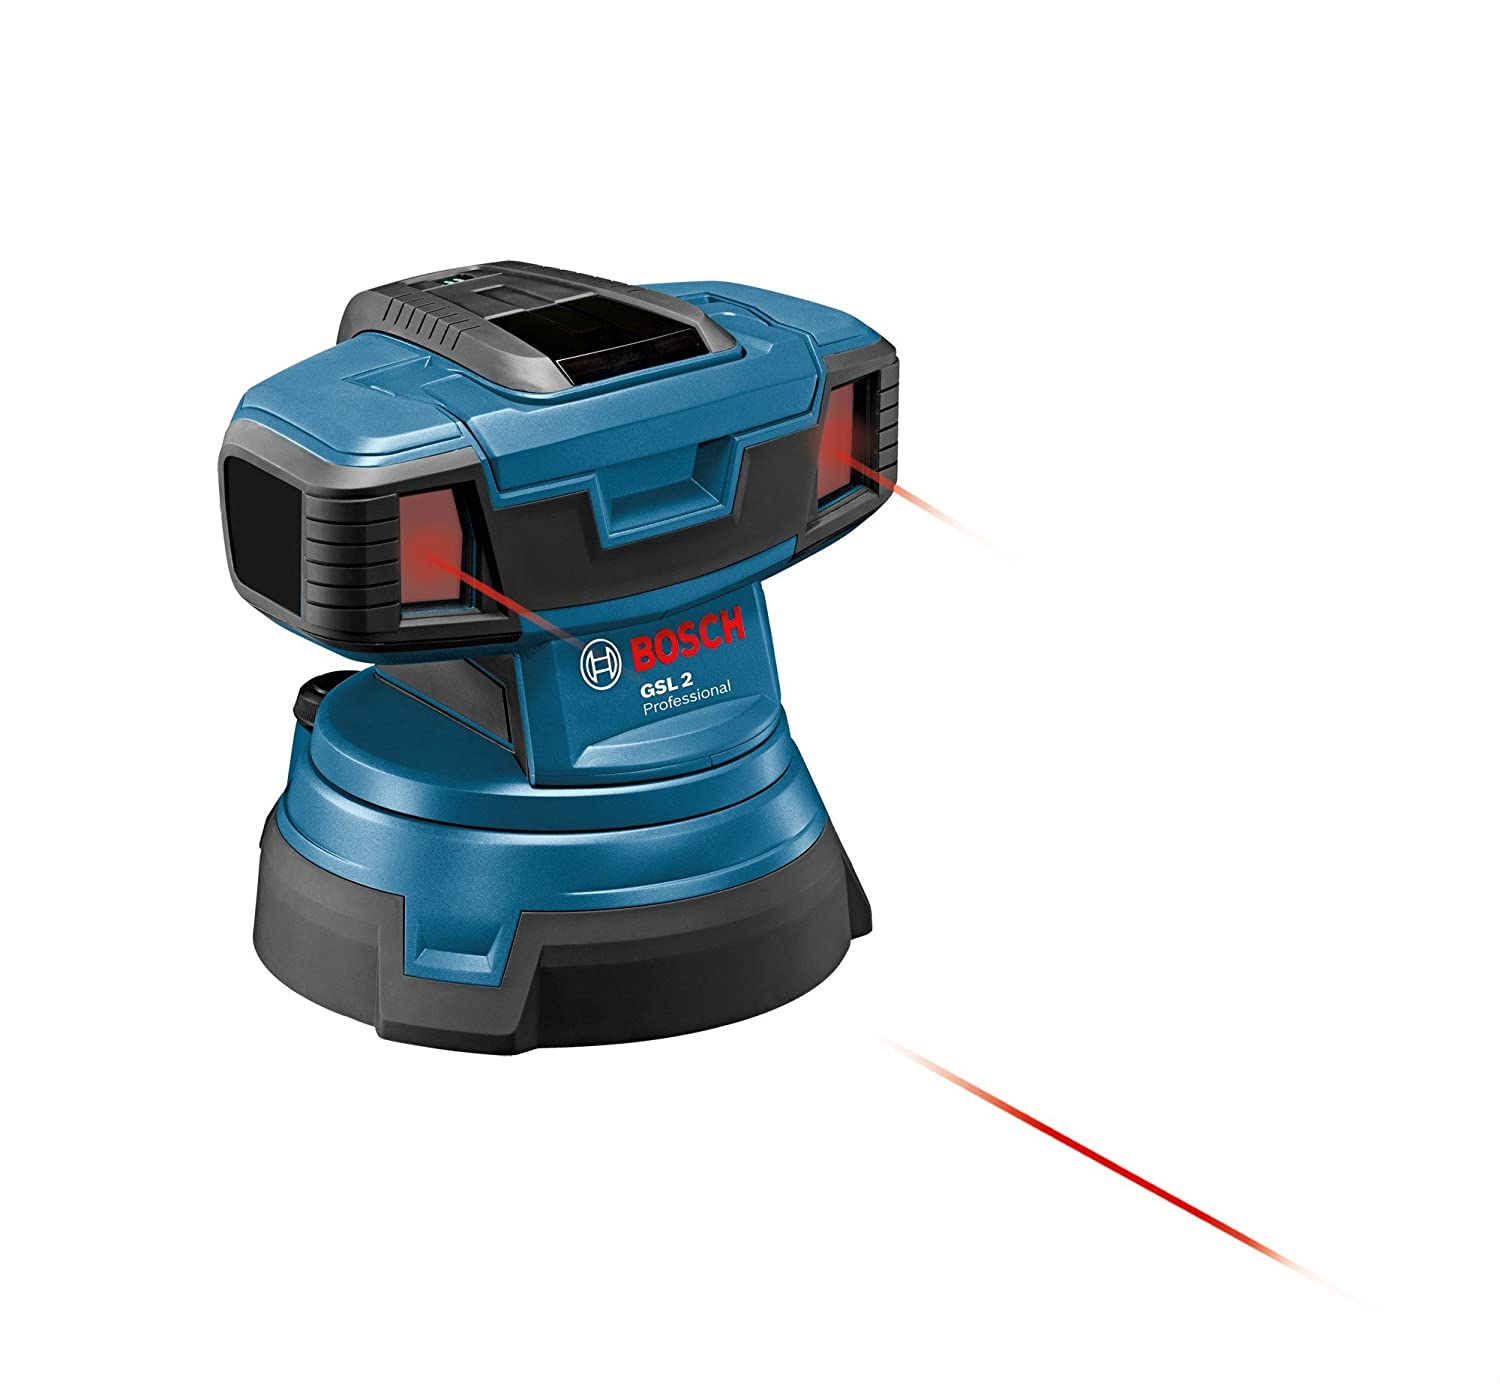 Top 5 Best Bosch Laser Level (2020 Reviews & Buying Guide) 2